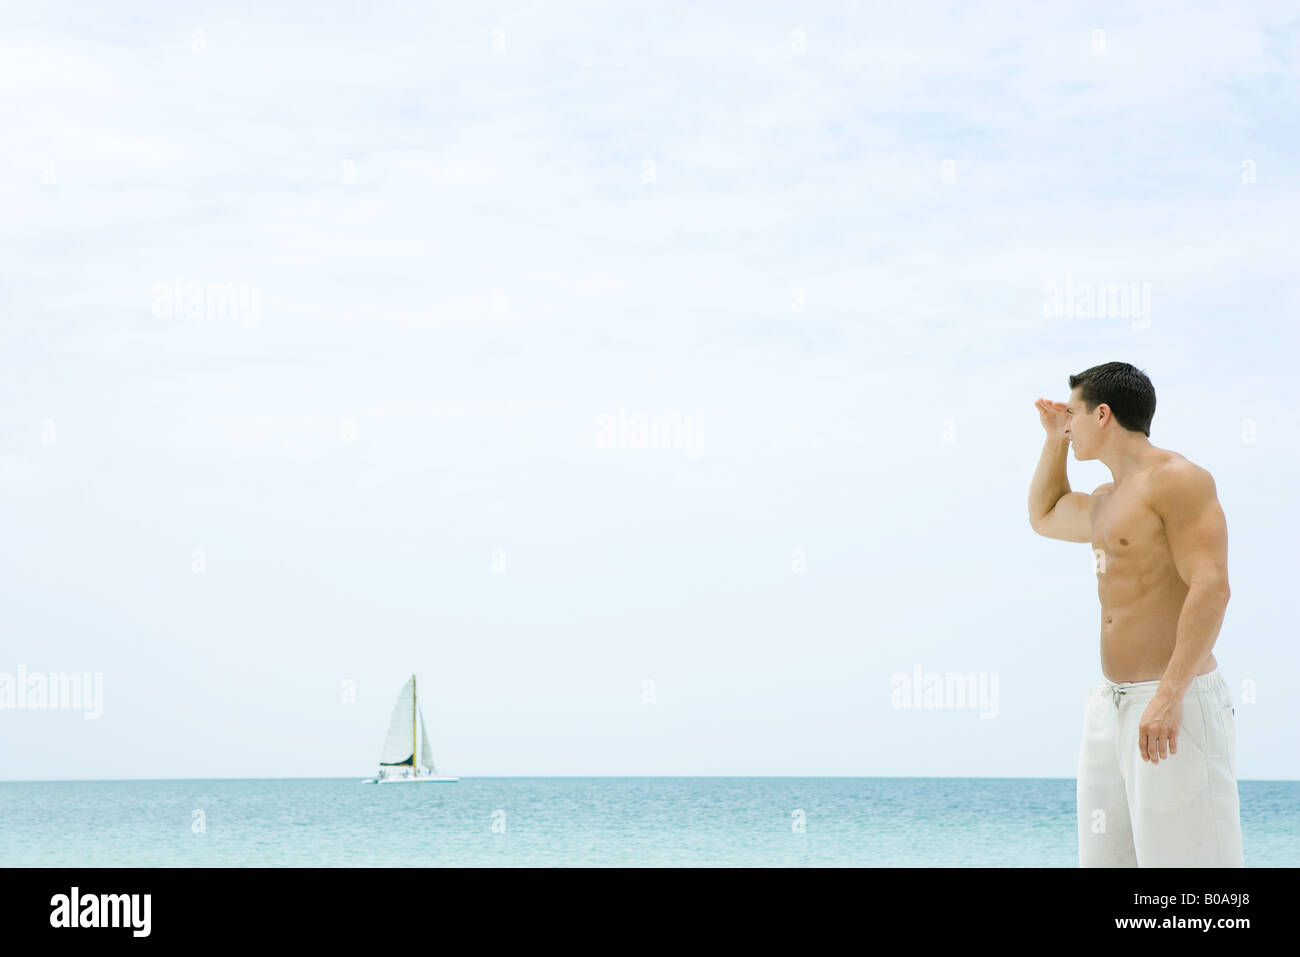 Man standing at the beach, looking at view, sailboat in the distance - Stock Image